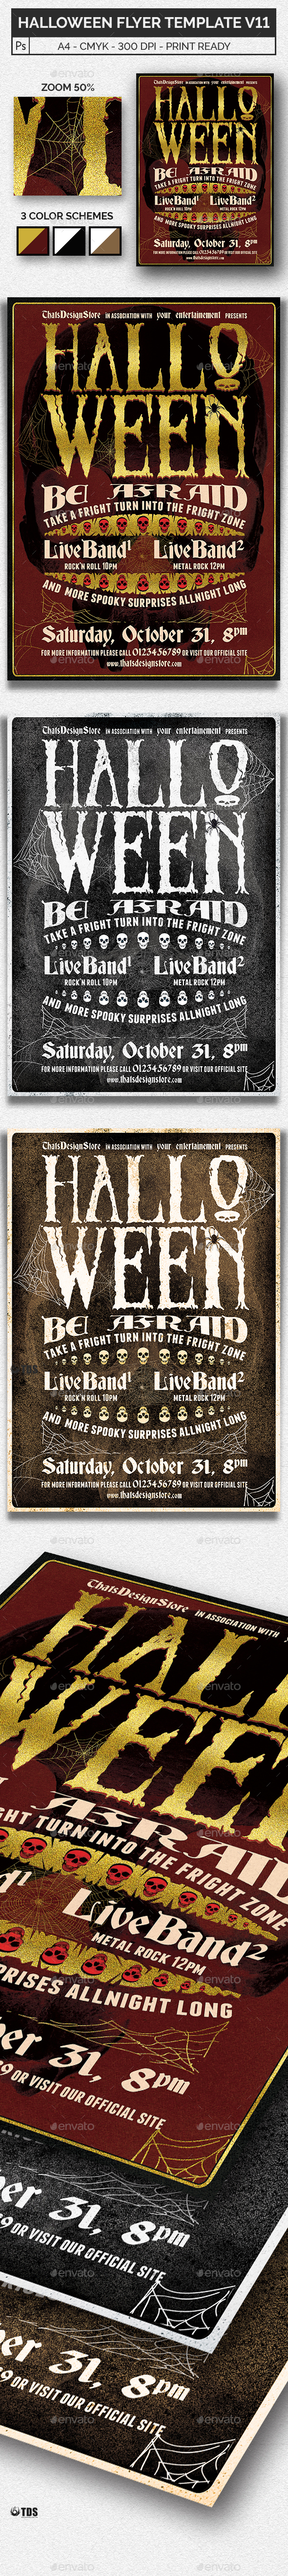 Halloween Flyer Template V11 - Concerts Events